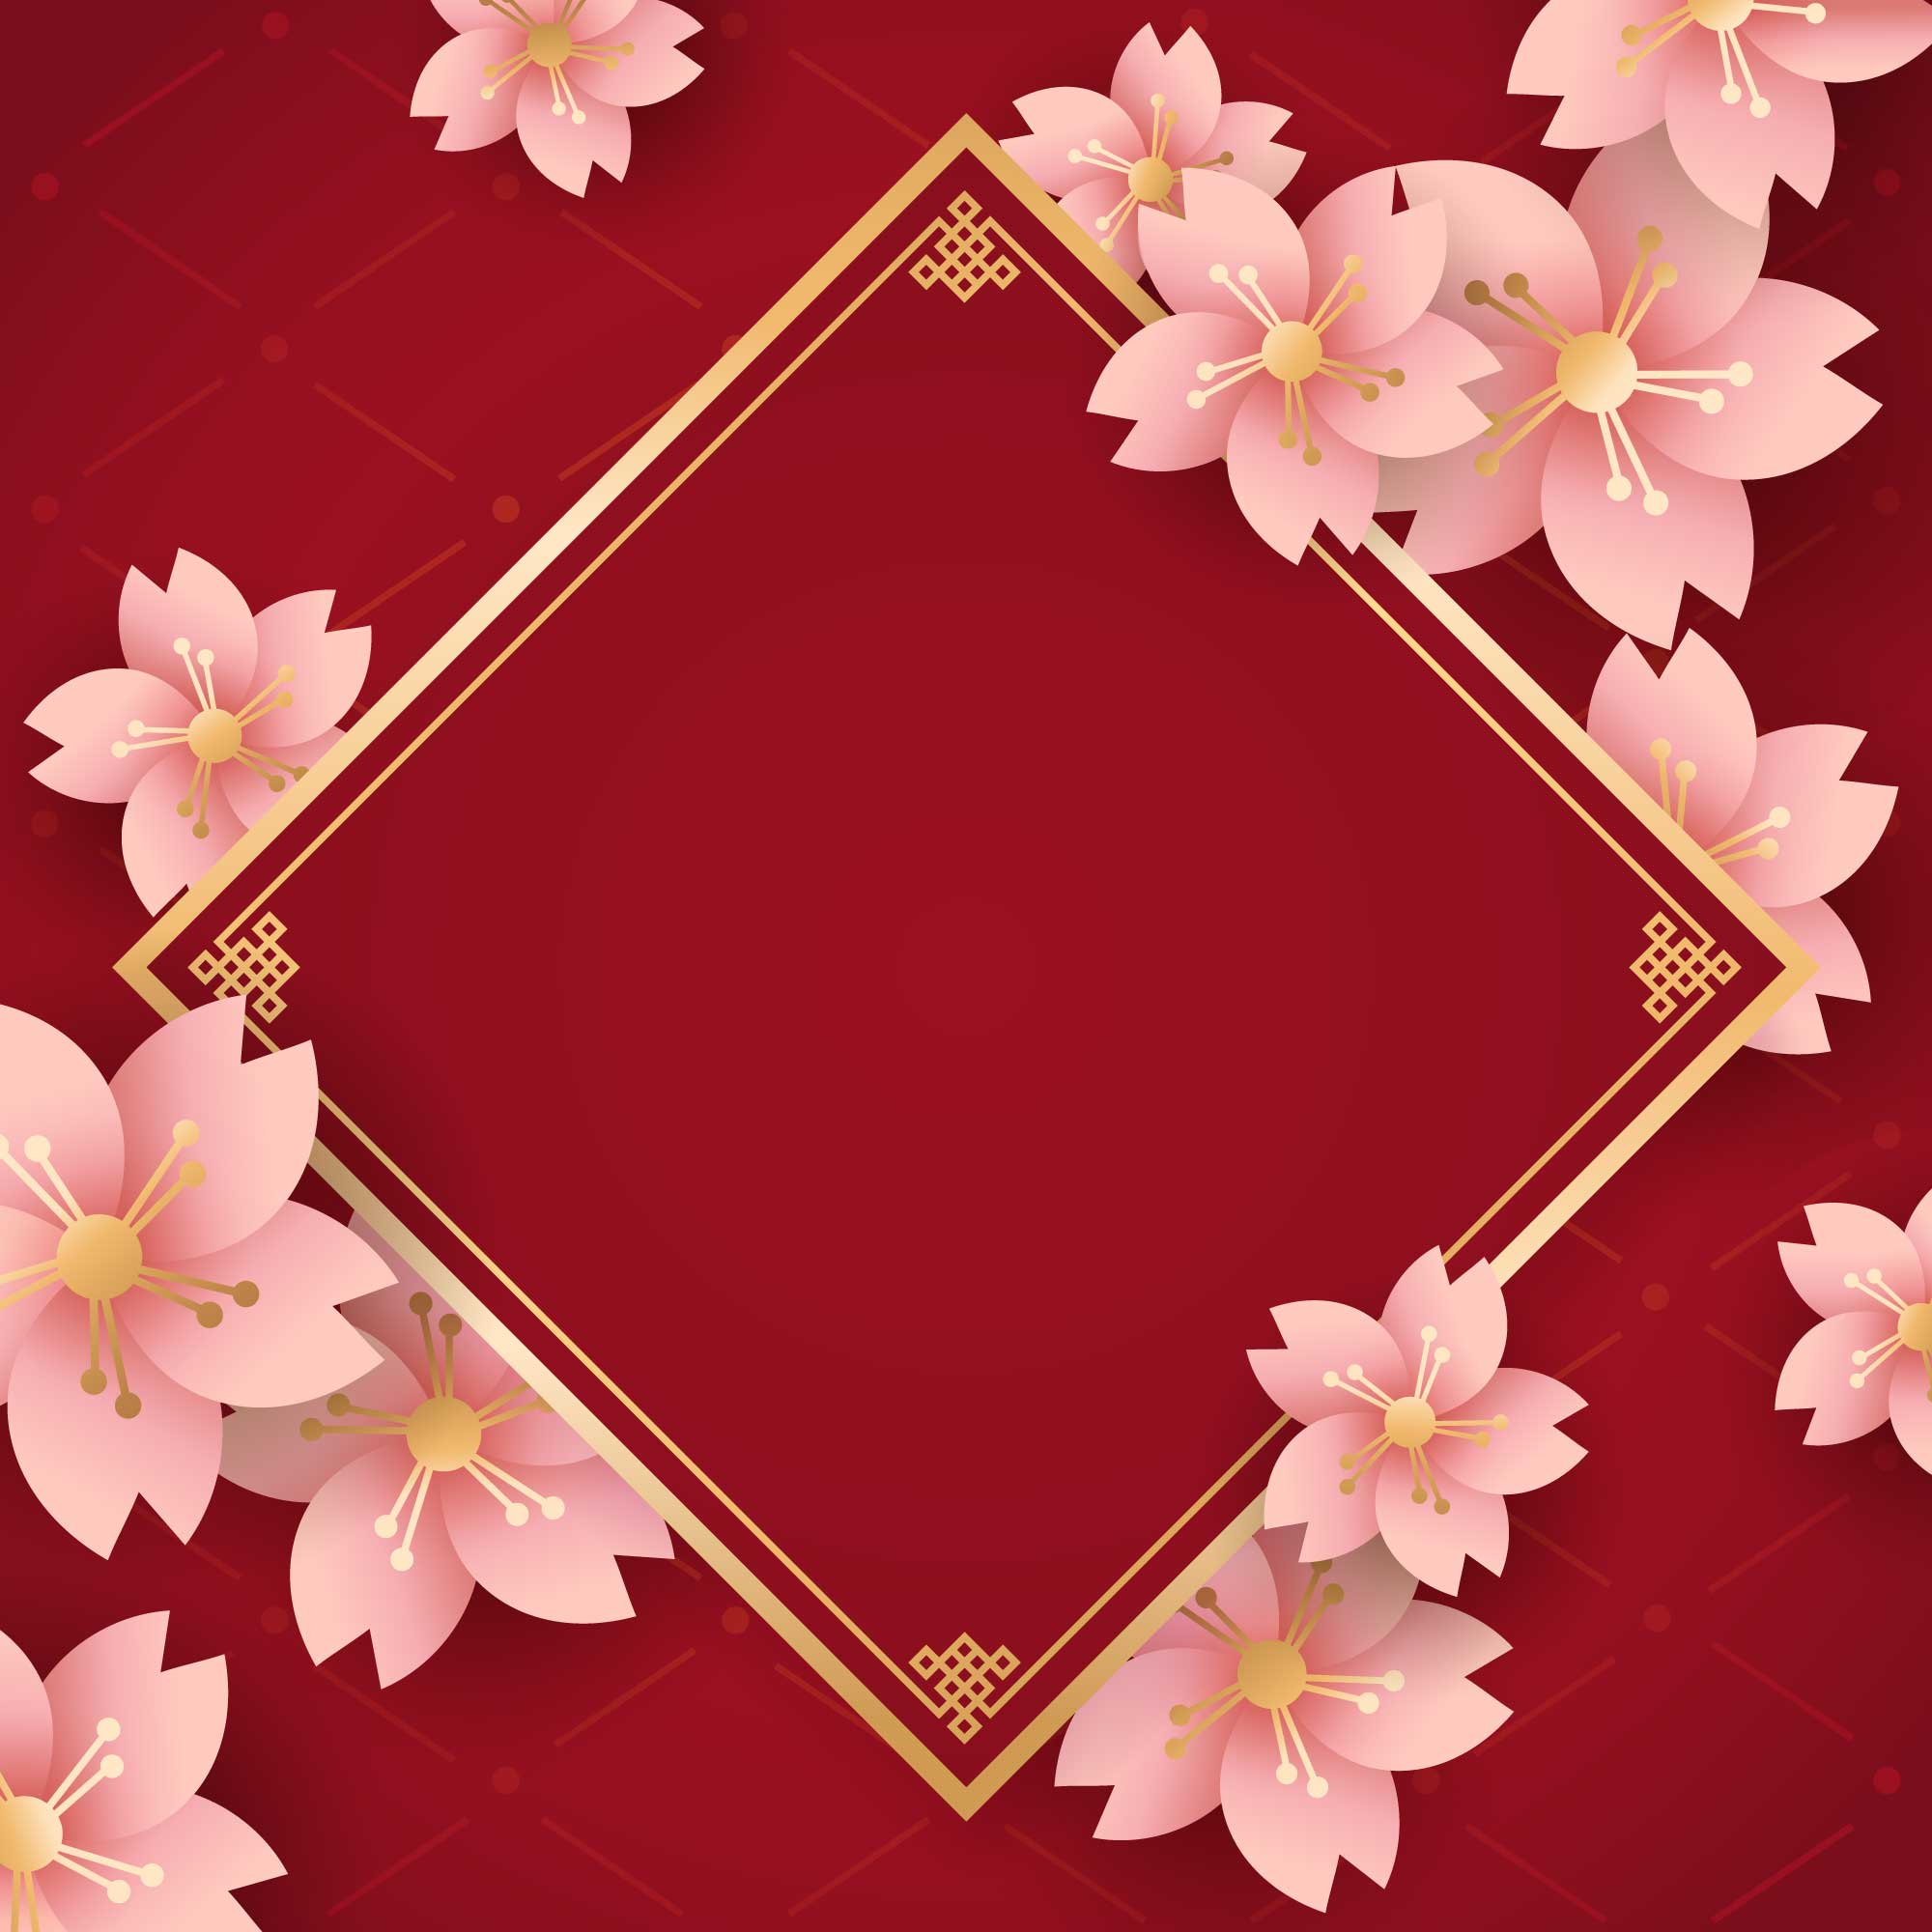 Chinese New Year Flower Background Download Free Vectors Clipart Graphics Vector Art